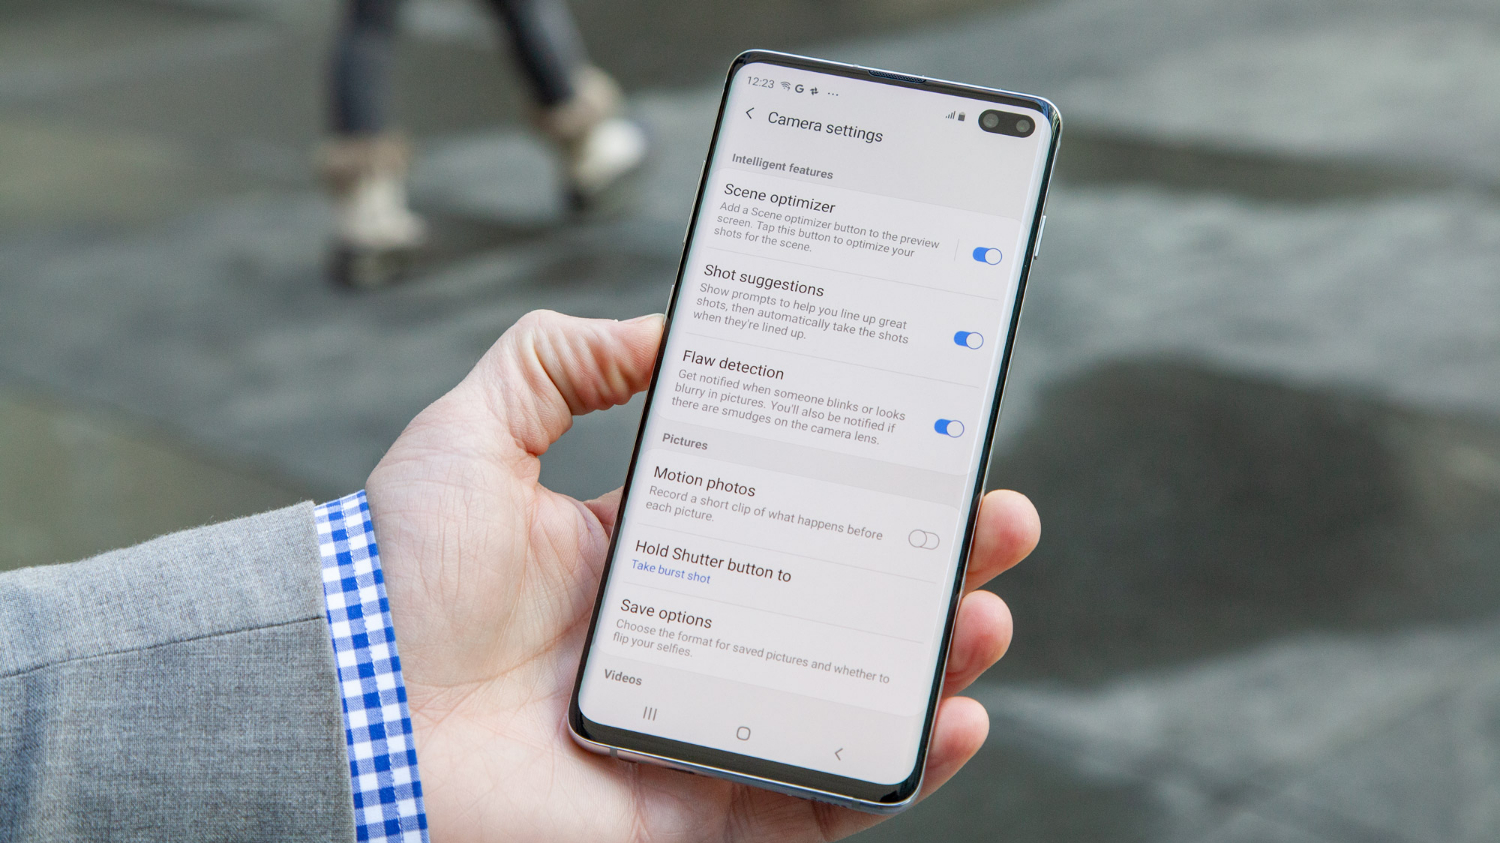 Galaxy S10: Ten Features to Enable and Disable | Tom's Guide